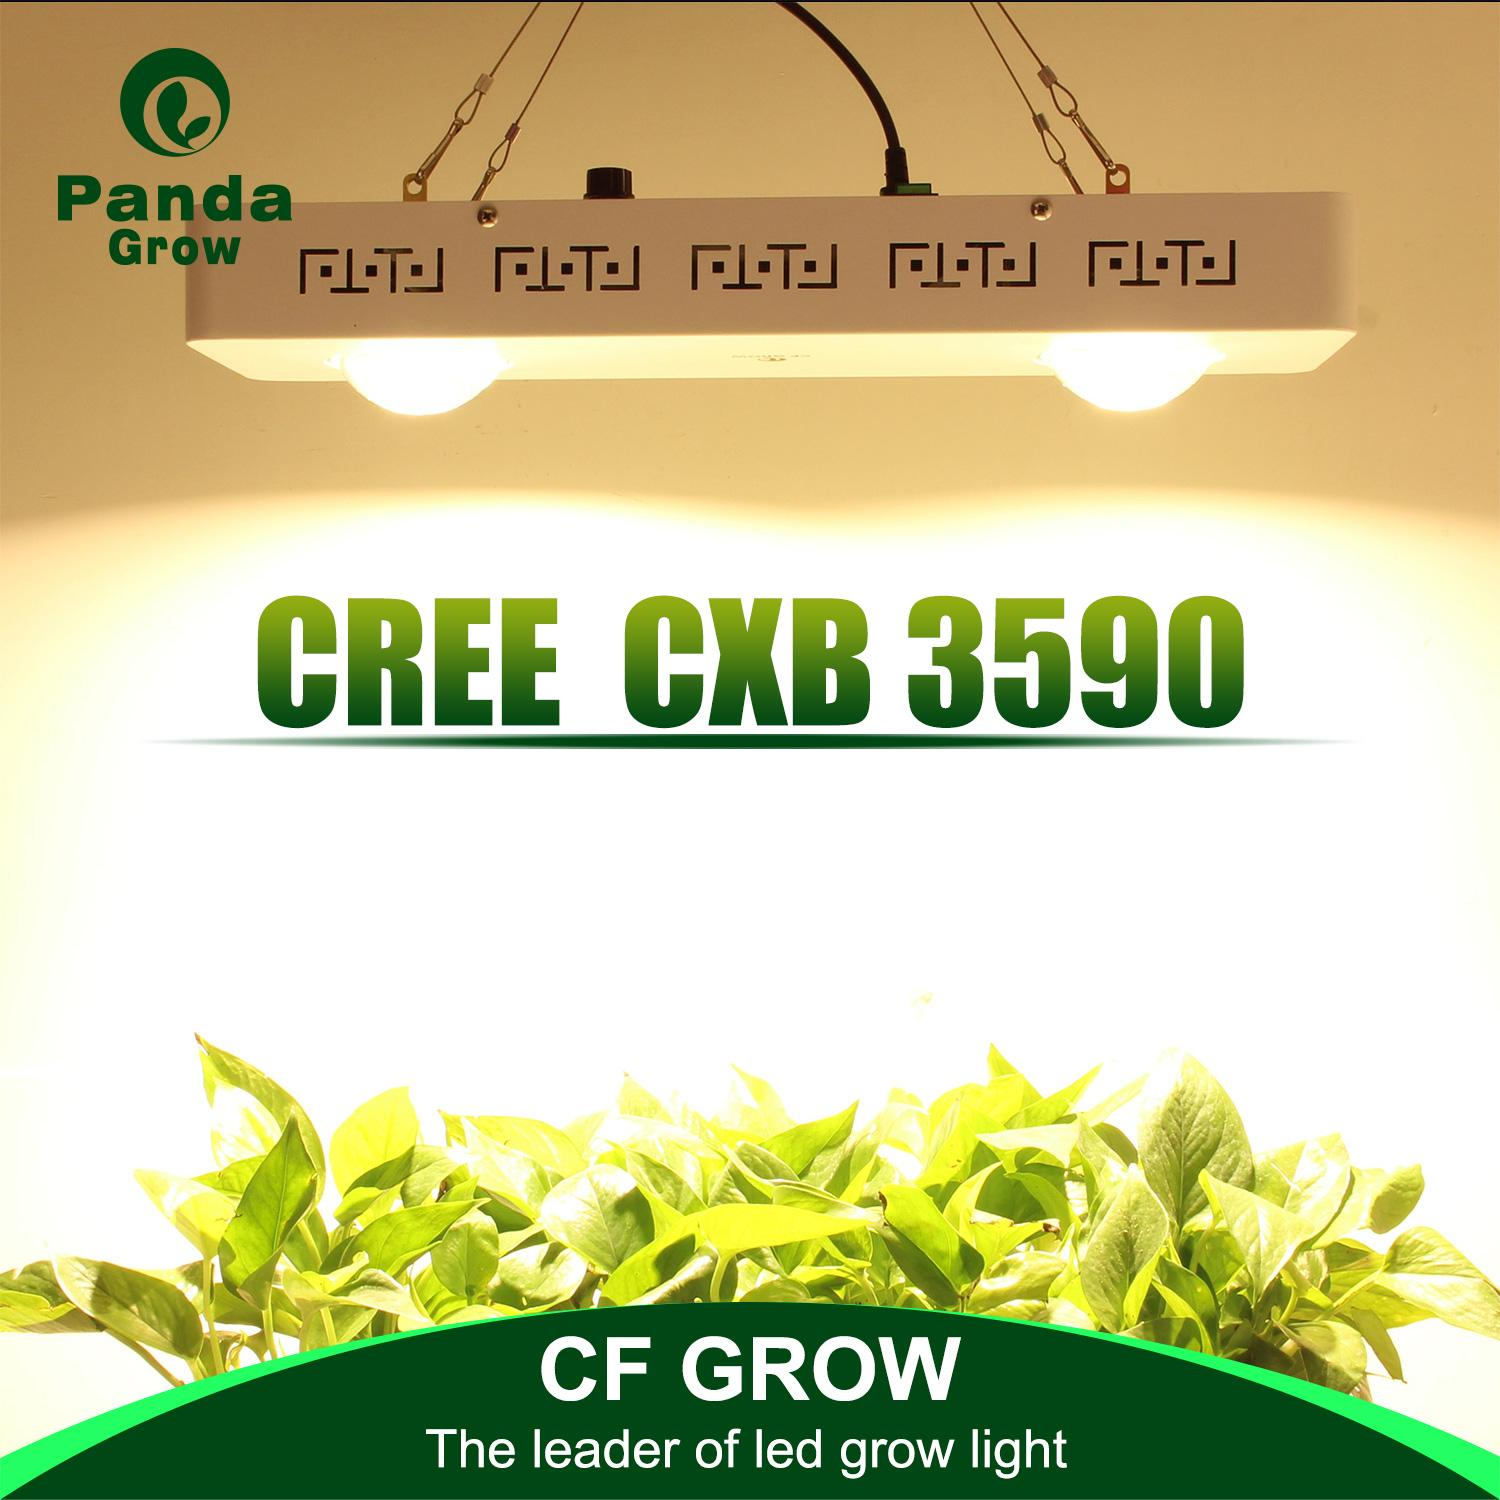 Cf Grow Cree Cxb3590 100w 200w Cob Led Grow Light Full Spectrum ...